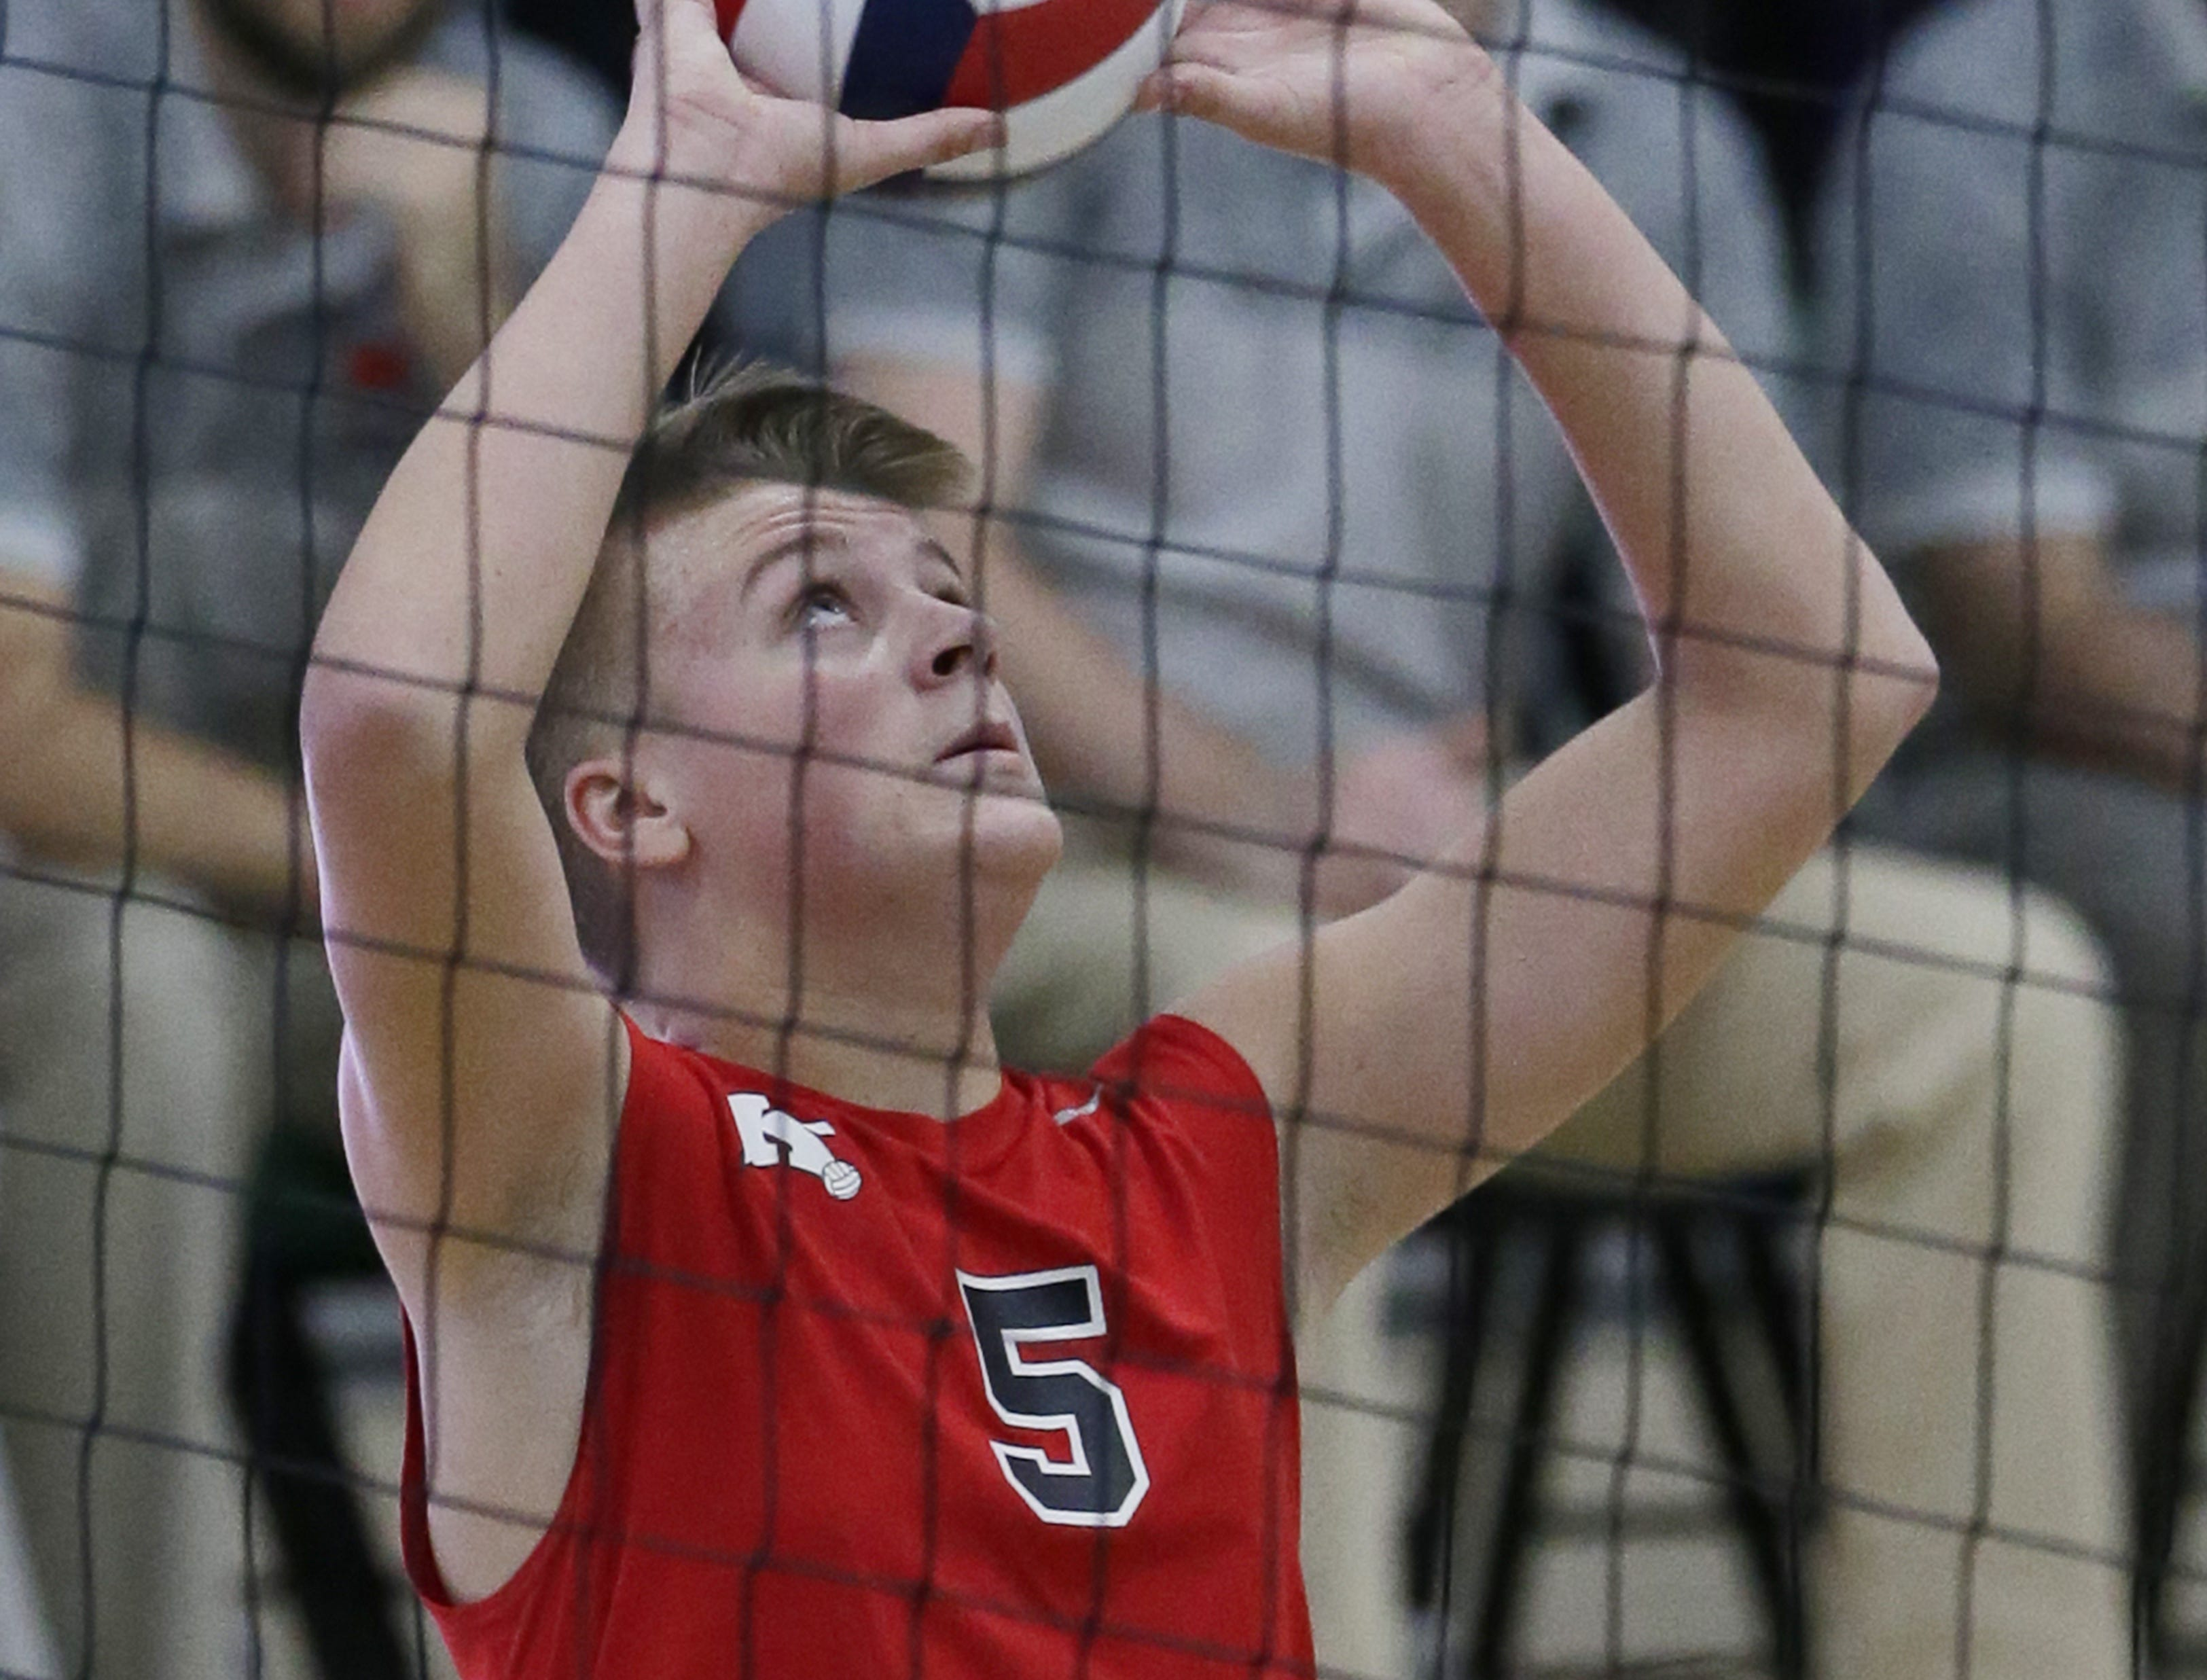 Kimberly's Chase Robinson sets the ball at the net.  Kimberly Papermakers played Kenosha Indian Trail Hawks in Division 1 WIAA boys volleyball playoff semi-final, Saturday, November 10, 2018 at Wisconsin Lutheran College in Milwaukee, Wis. Joe Sienkiewicz/USA Today NETWORK-Wisconsin